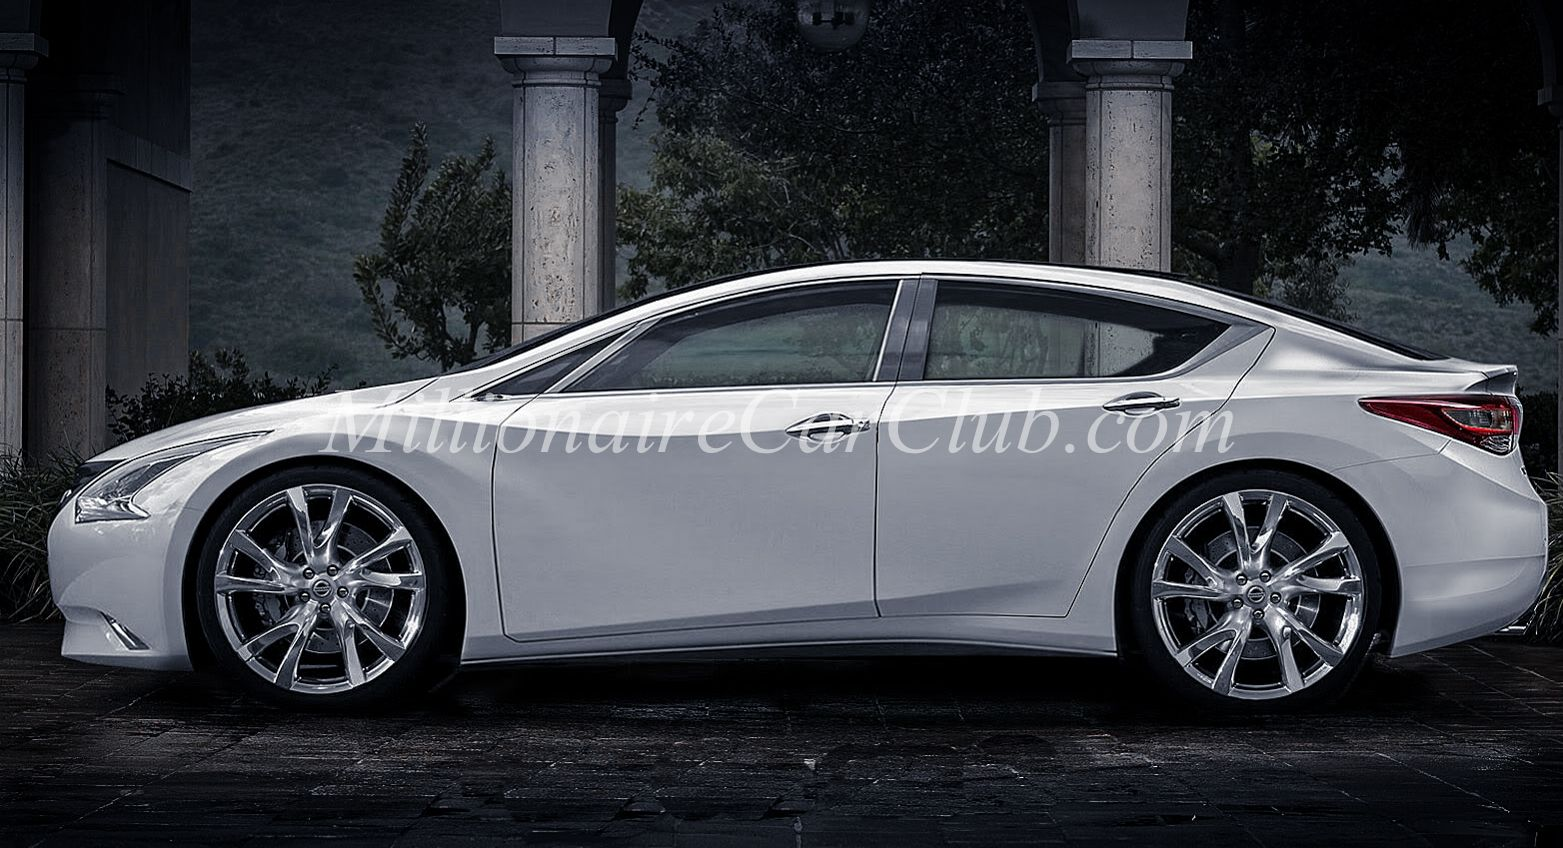 the new sixth generation 2015 nissan maxima is due to make its debut